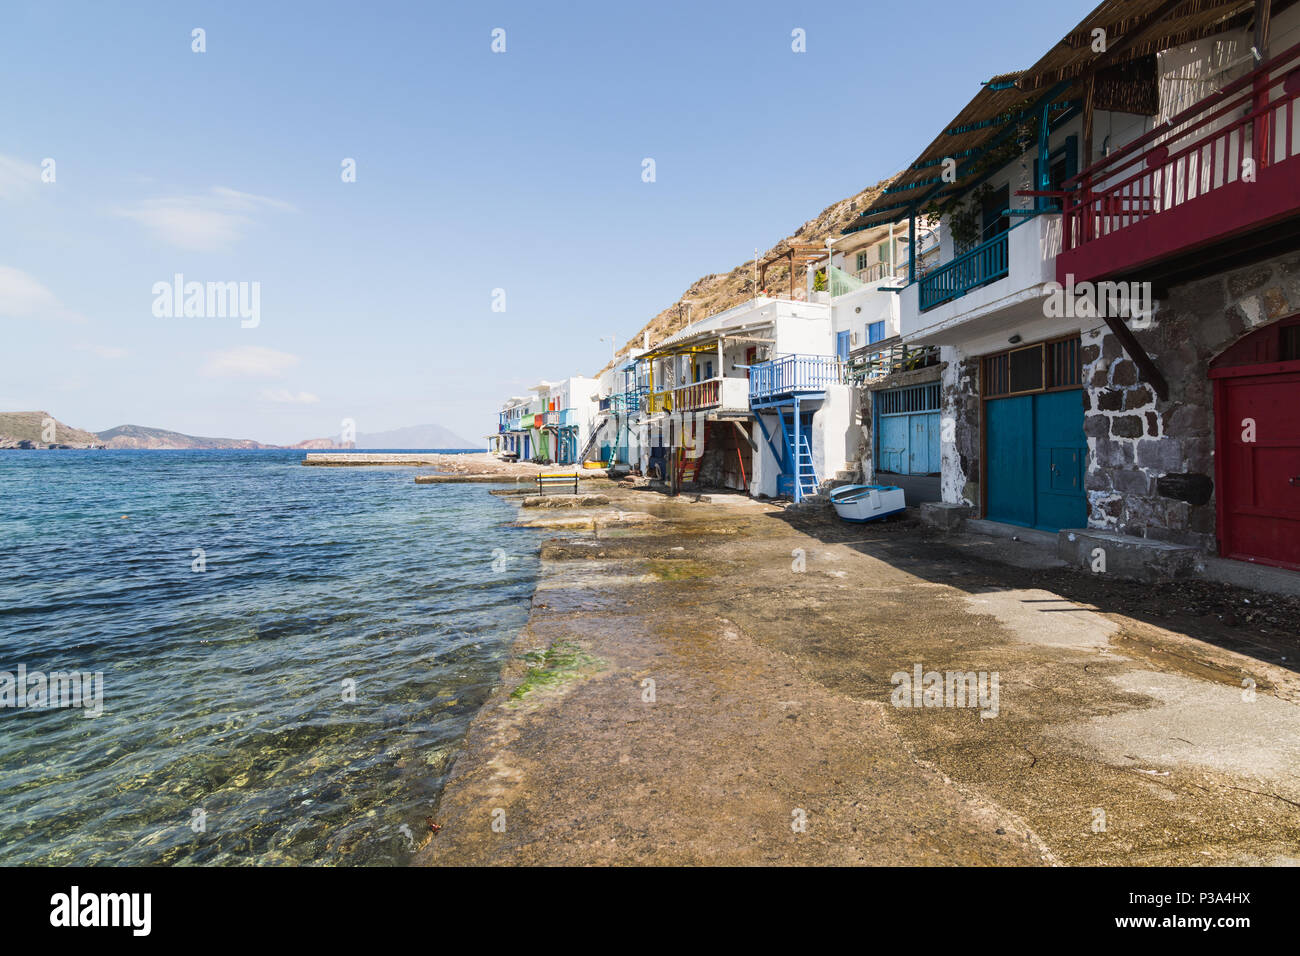 Colourfull old houses in fishermen town of Klima on Milos island, Greece. Sunny day, wide angle lens shot. - Stock Image